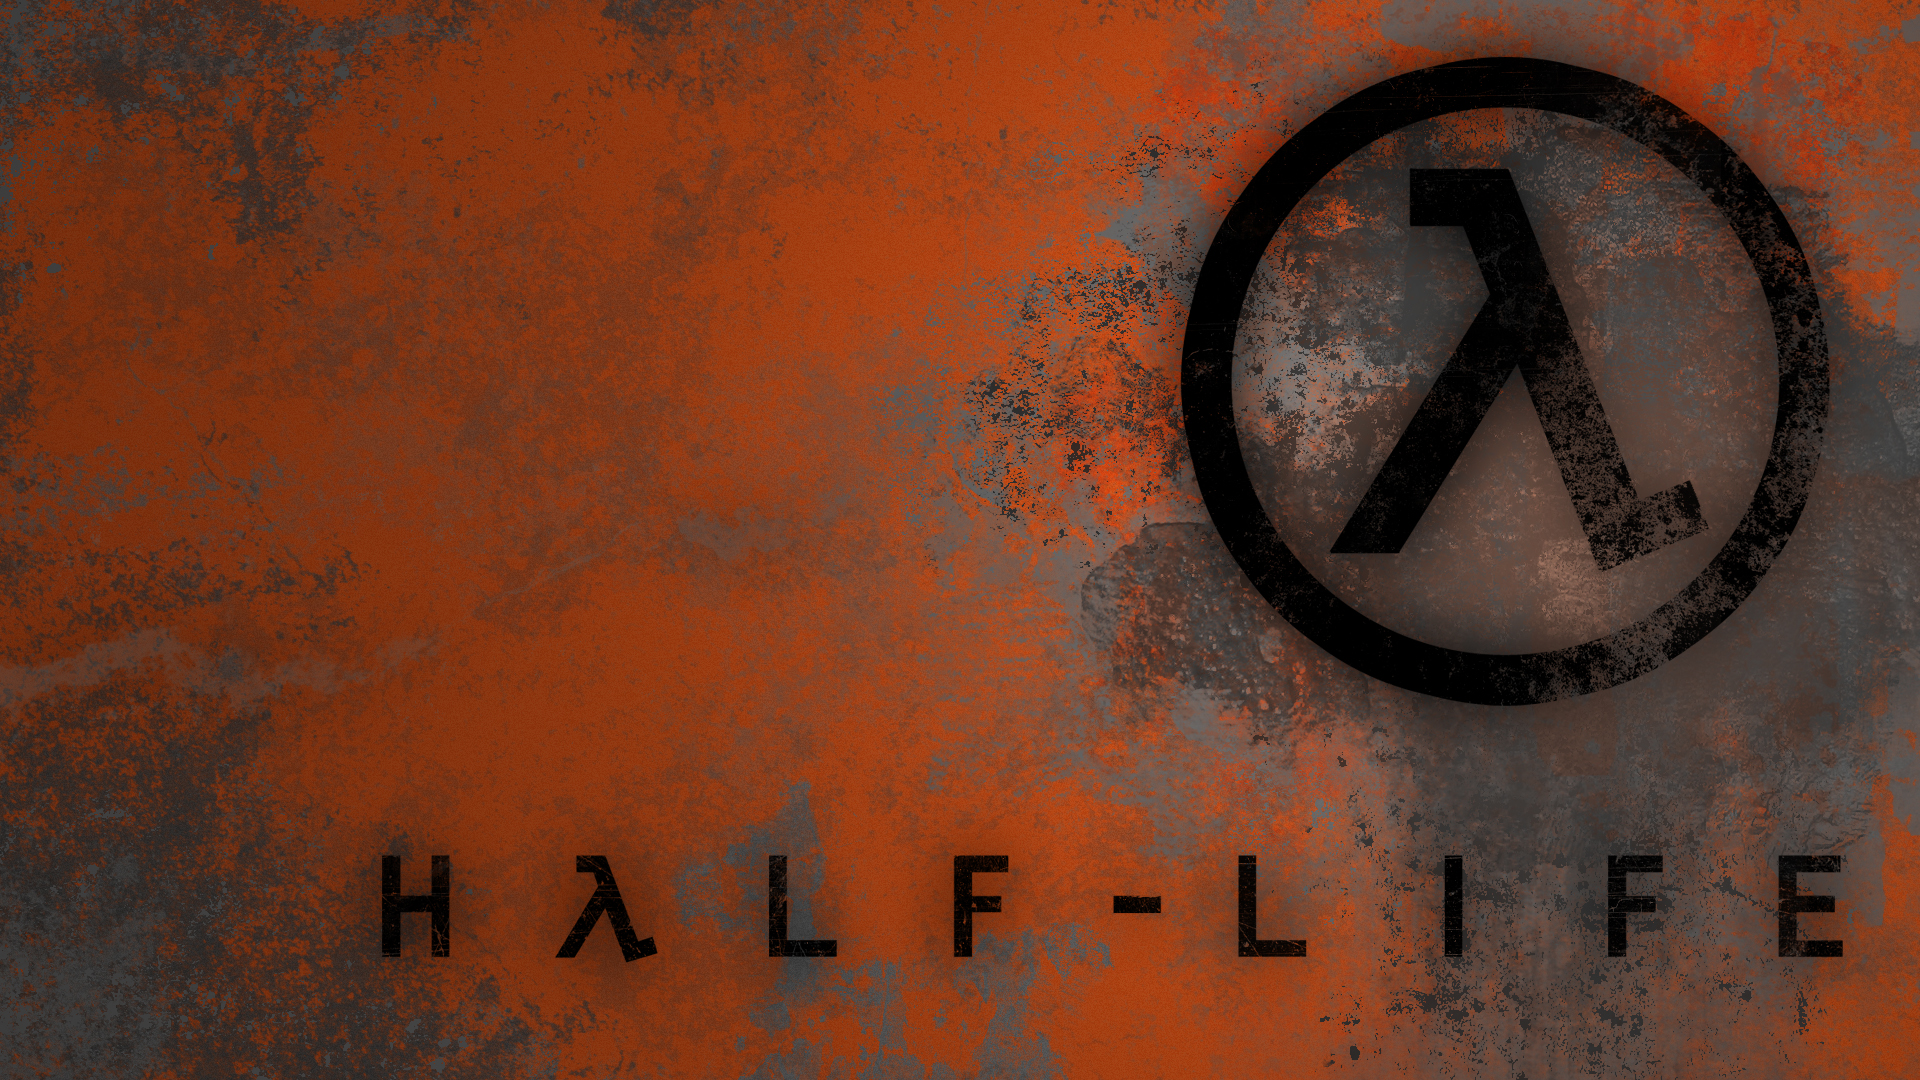 Half_life_1080p_wallpaper_by_caboose6789-d3ikf70